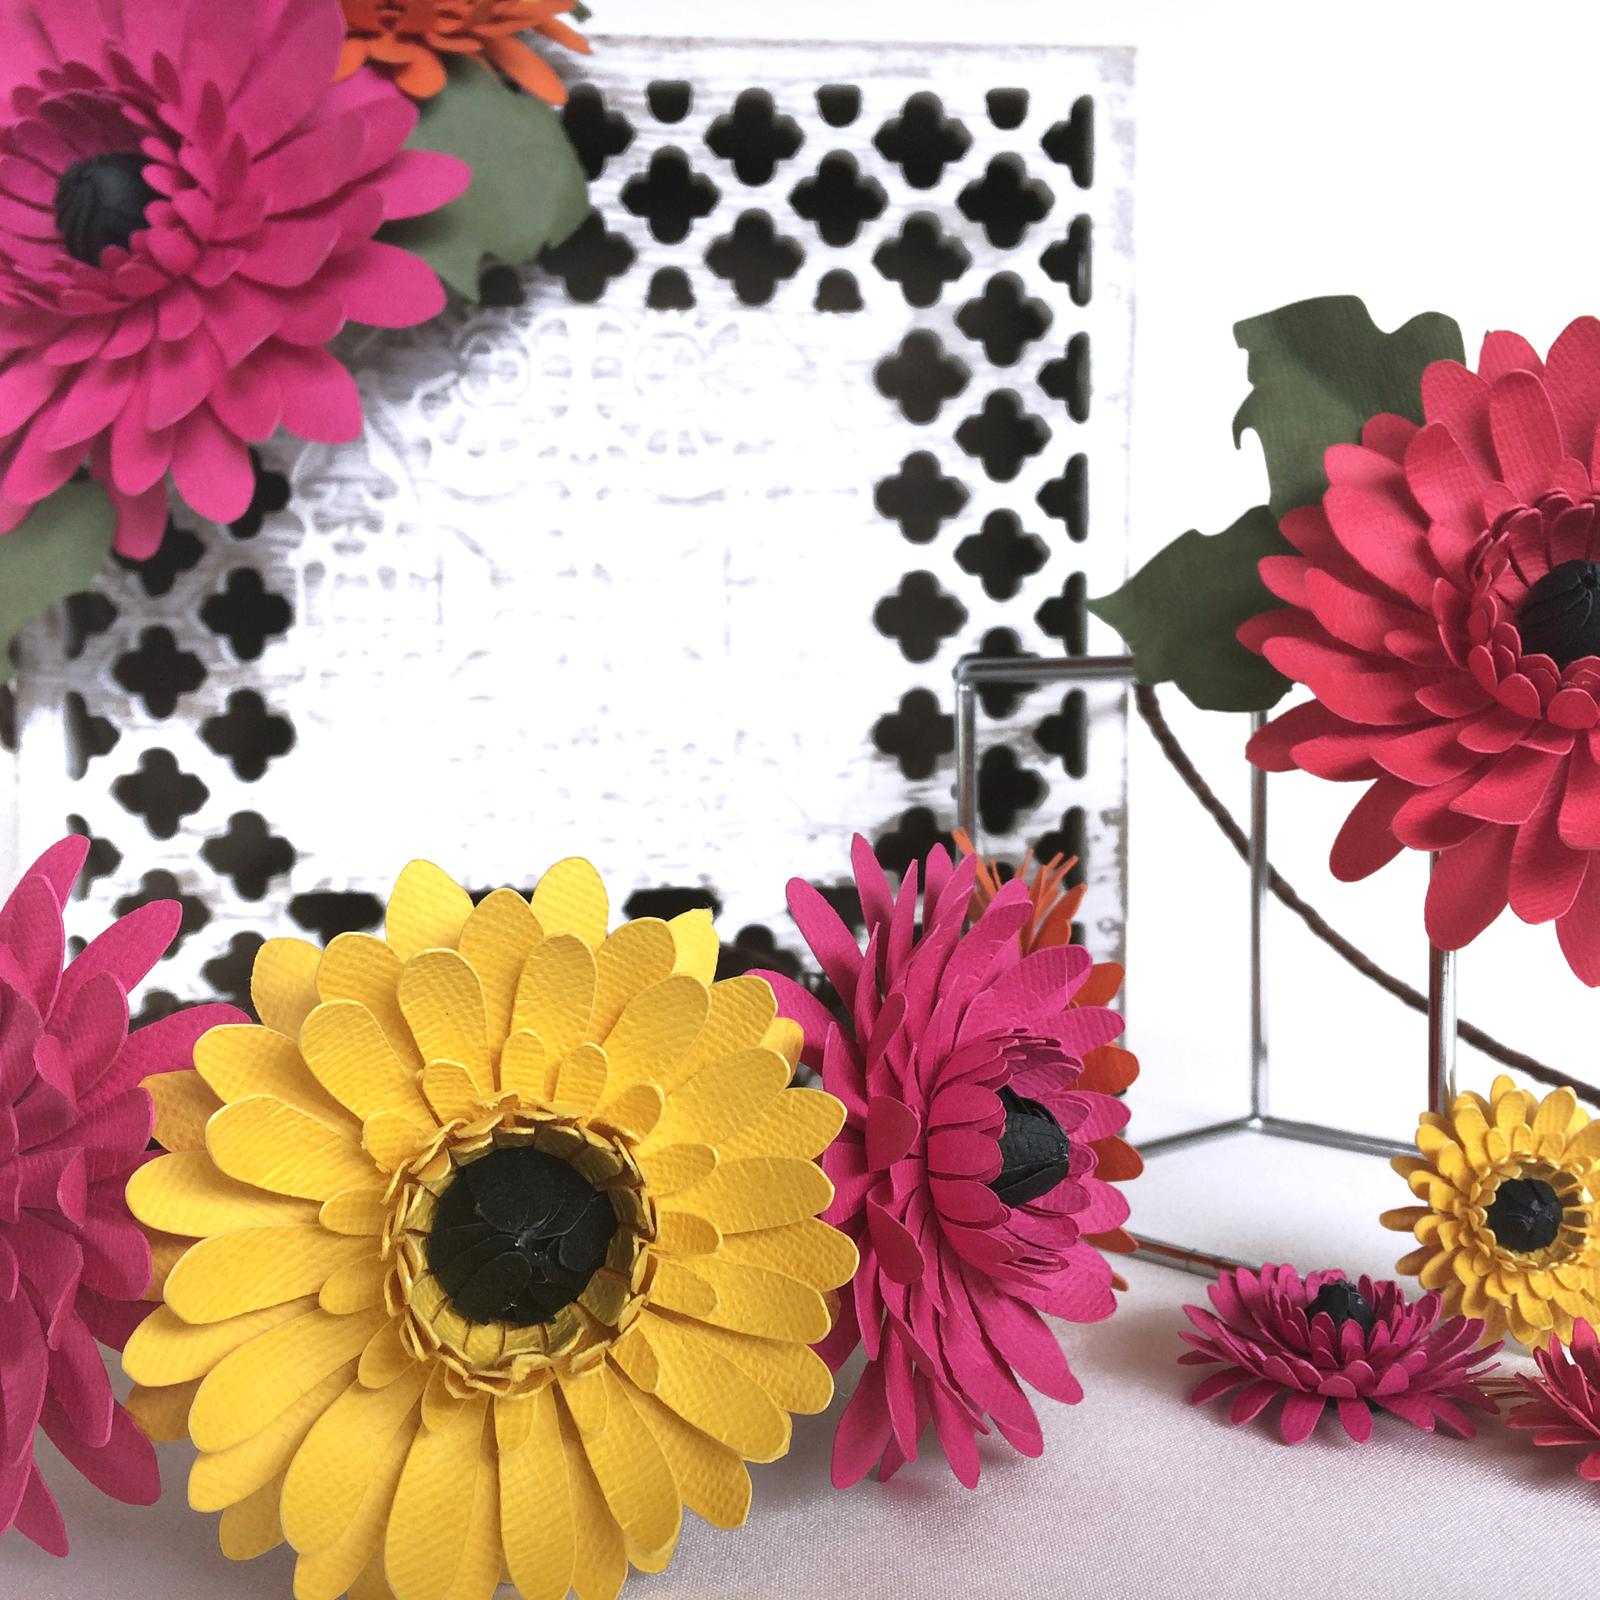 Paper Flower Gerbera Range Hair Accessories, Phantom Rose Artistry